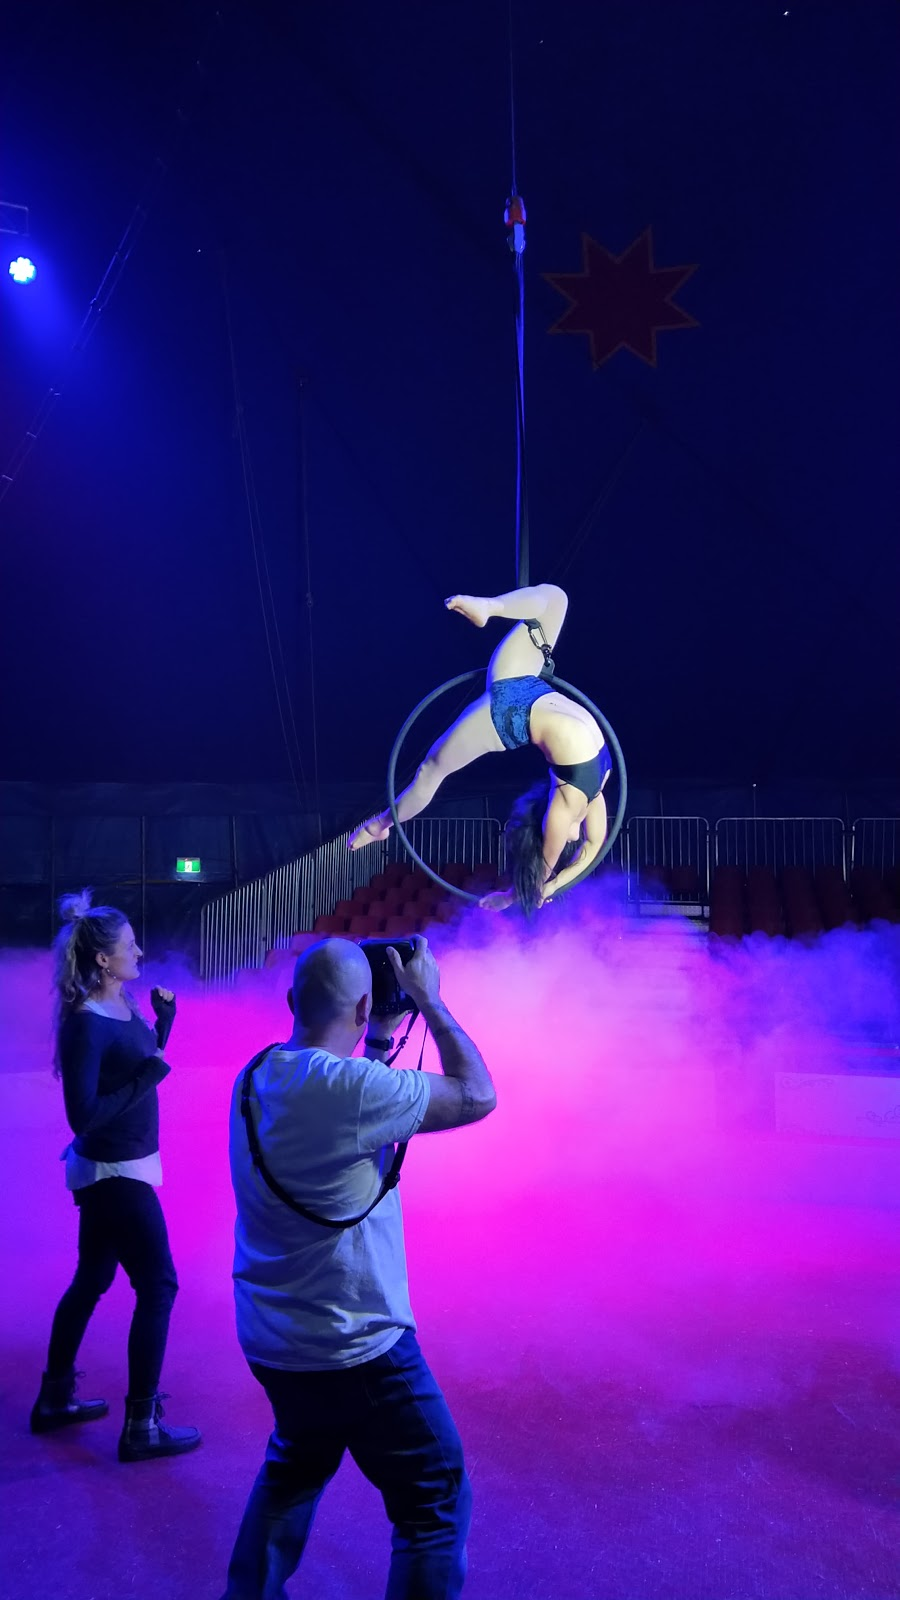 A photographer (with raised camera) and another person stand on a smoke filled stage looking at the lyra perfomer.